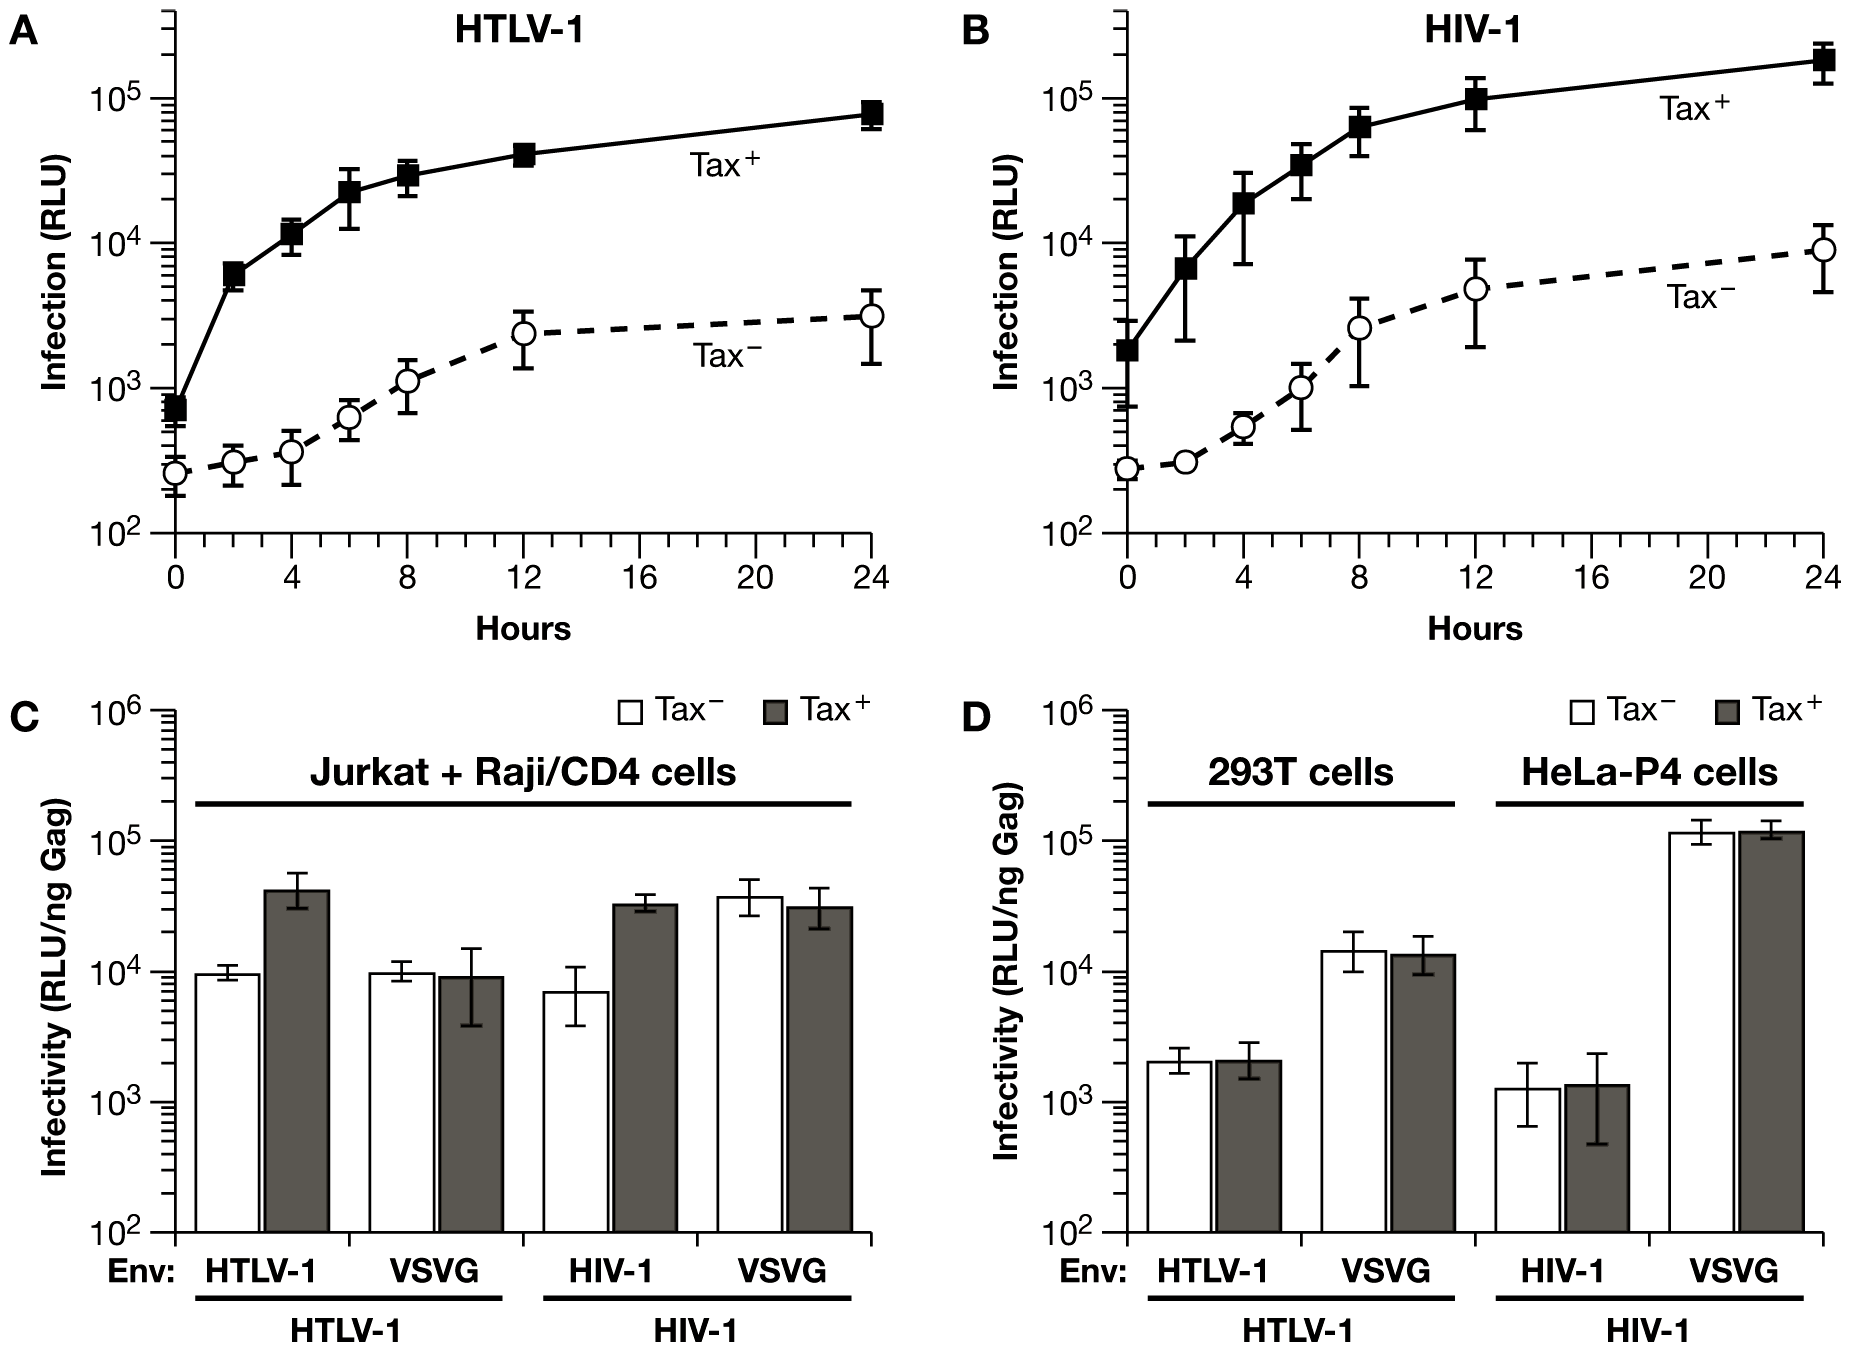 HTLV-1 Tax expression in Jurkat cells enhances coculture infection of Raji/CD4 cells with HIV-1 and HTLV-1 vectors.